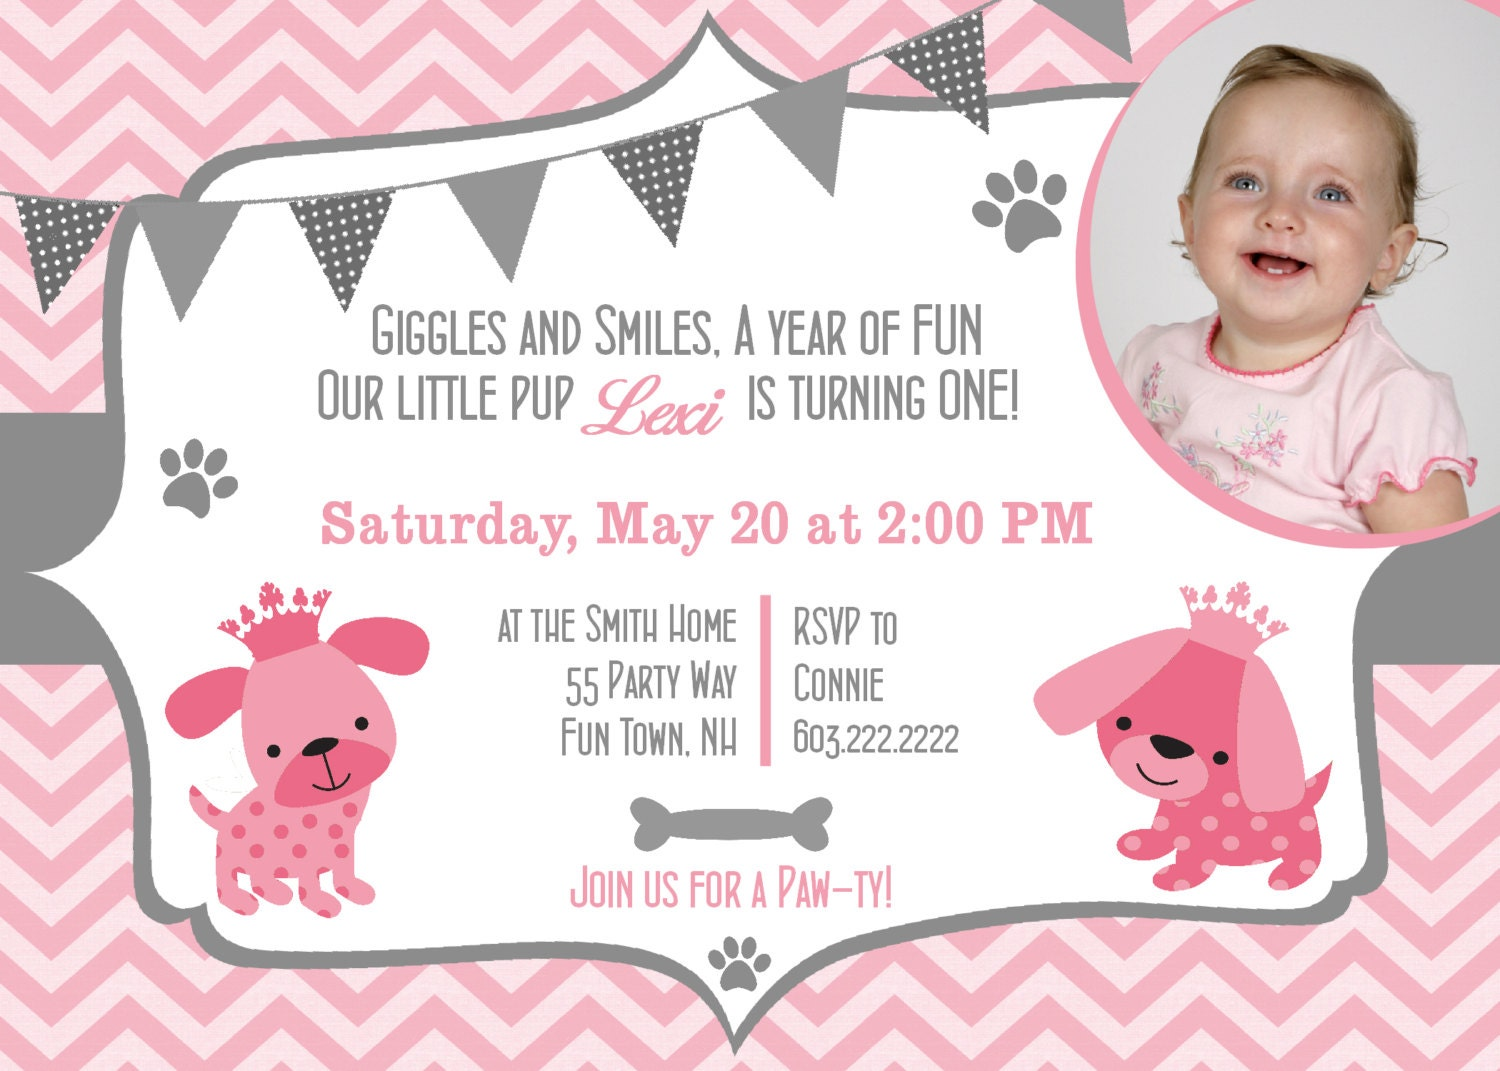 princess first birthday party invitations - Acur.lunamedia.co